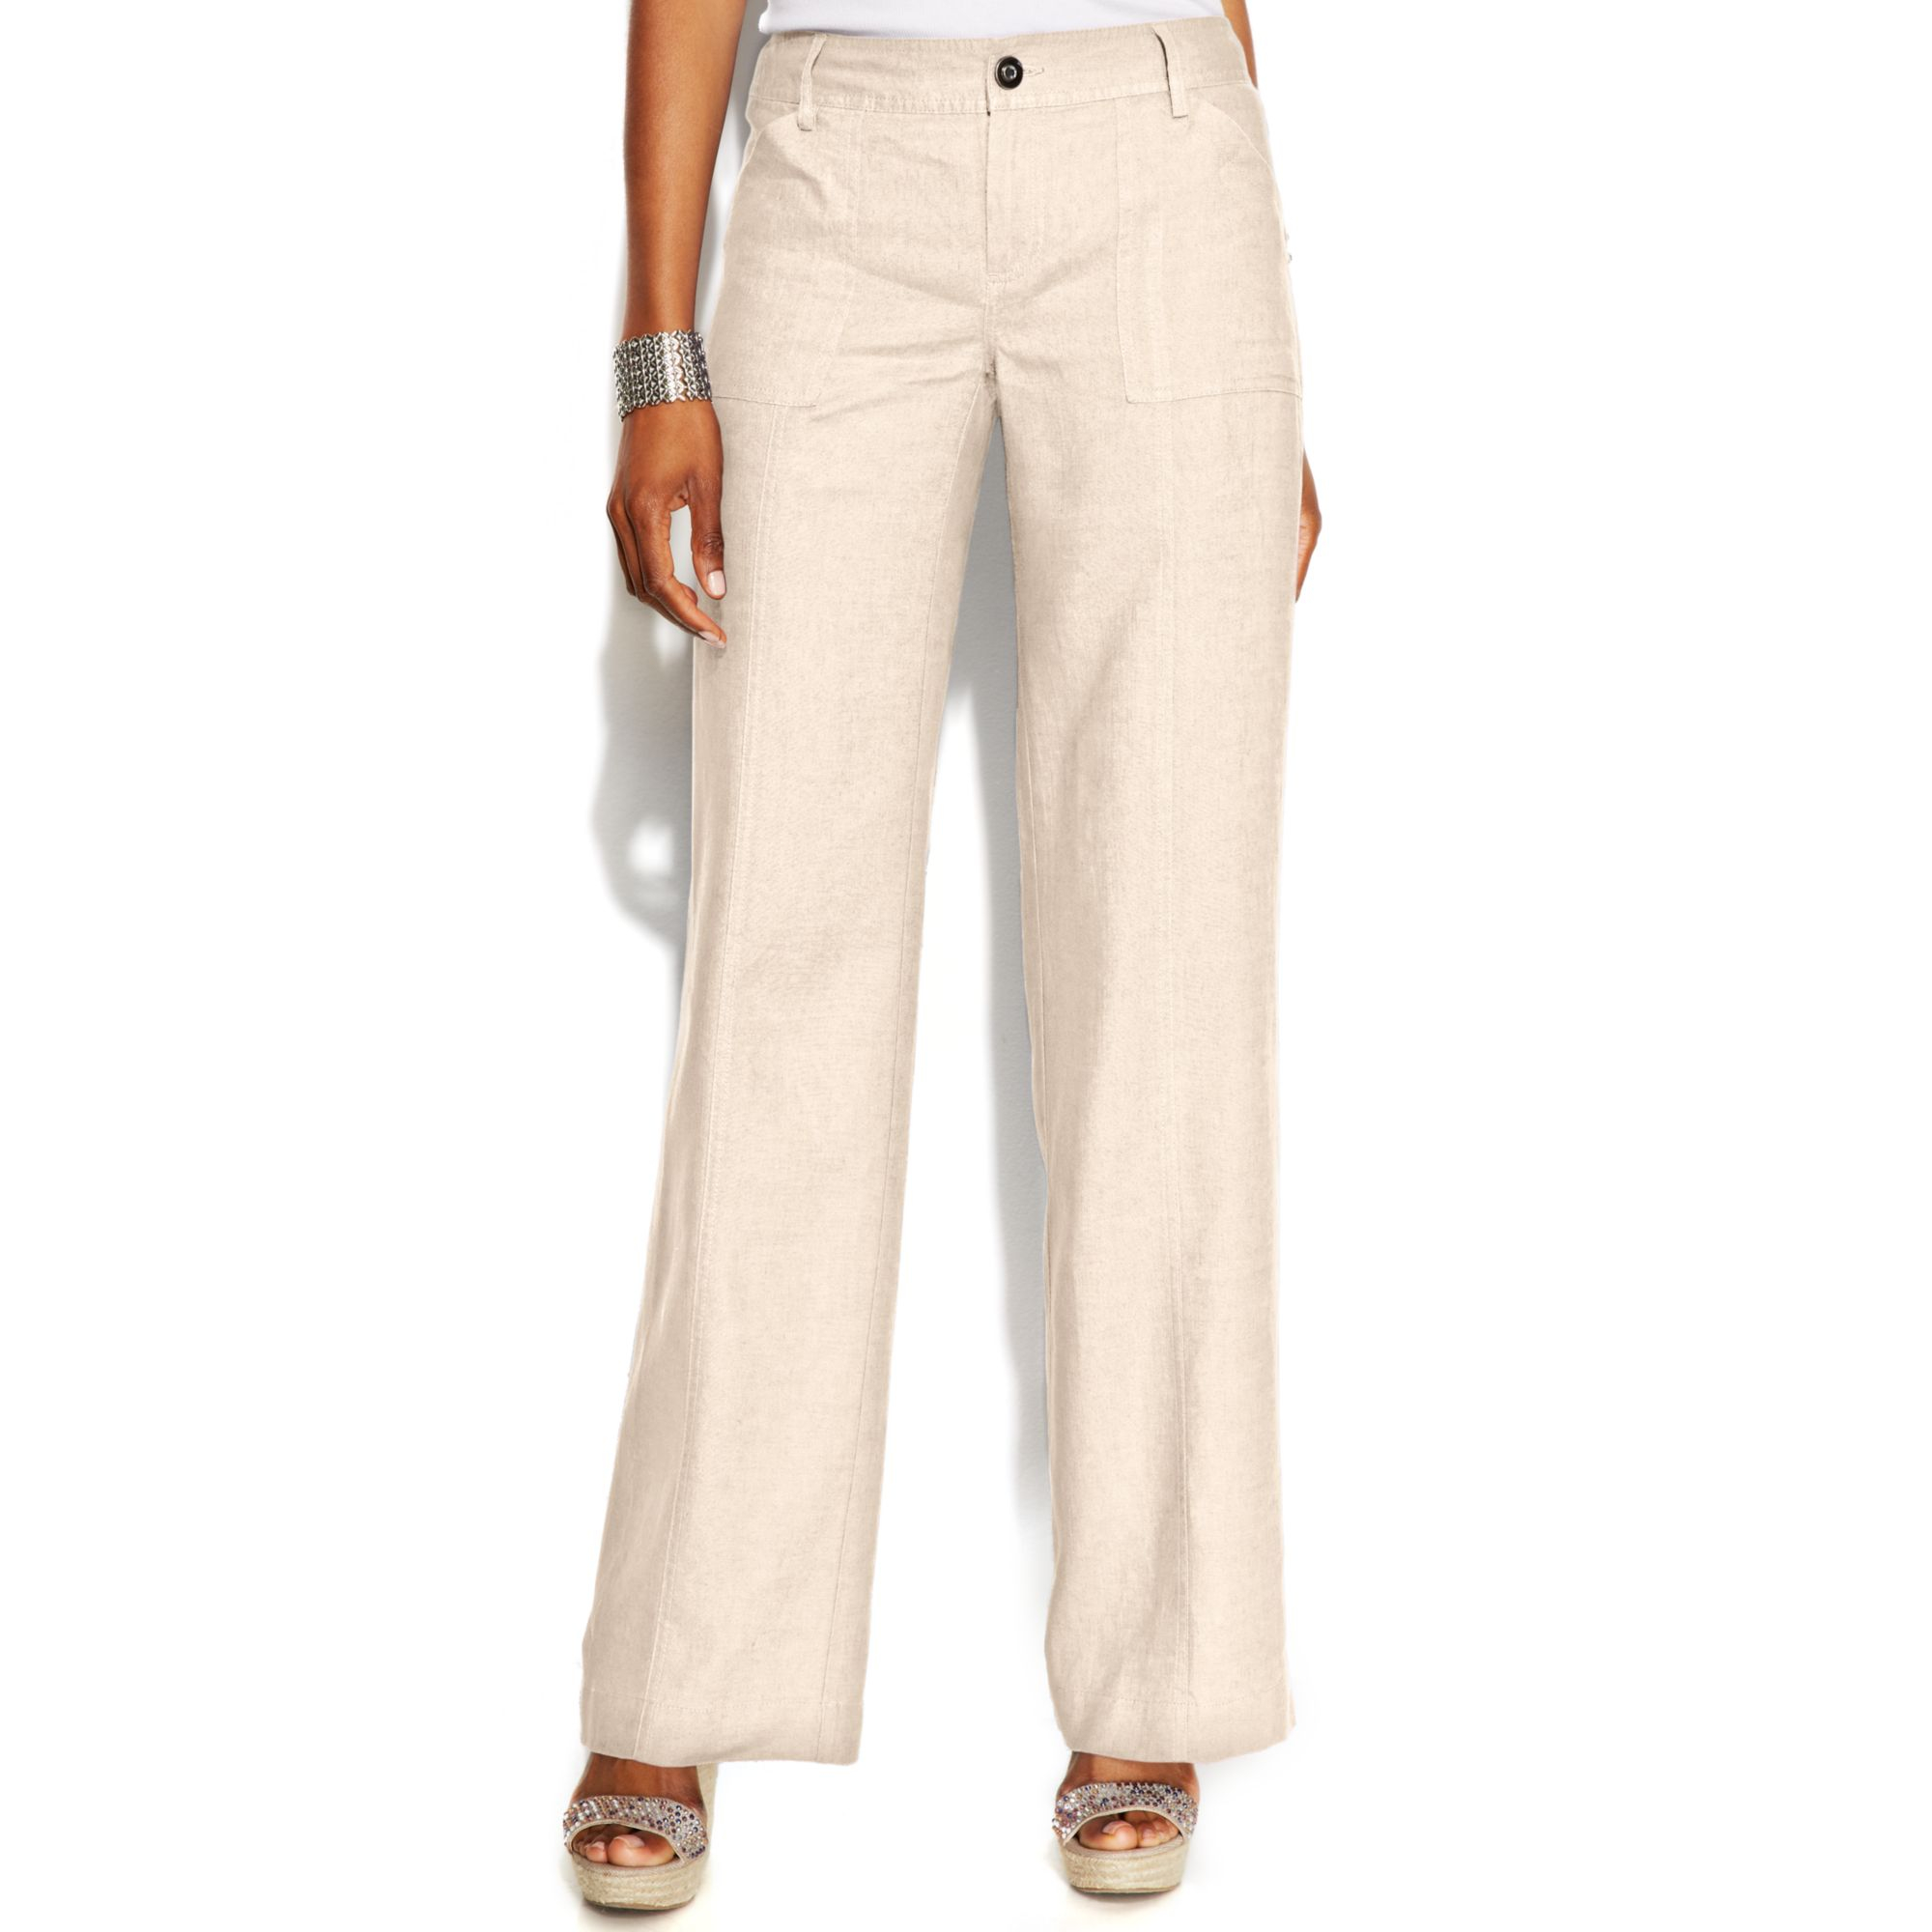 wide leg linen pants petite - Pi Pants